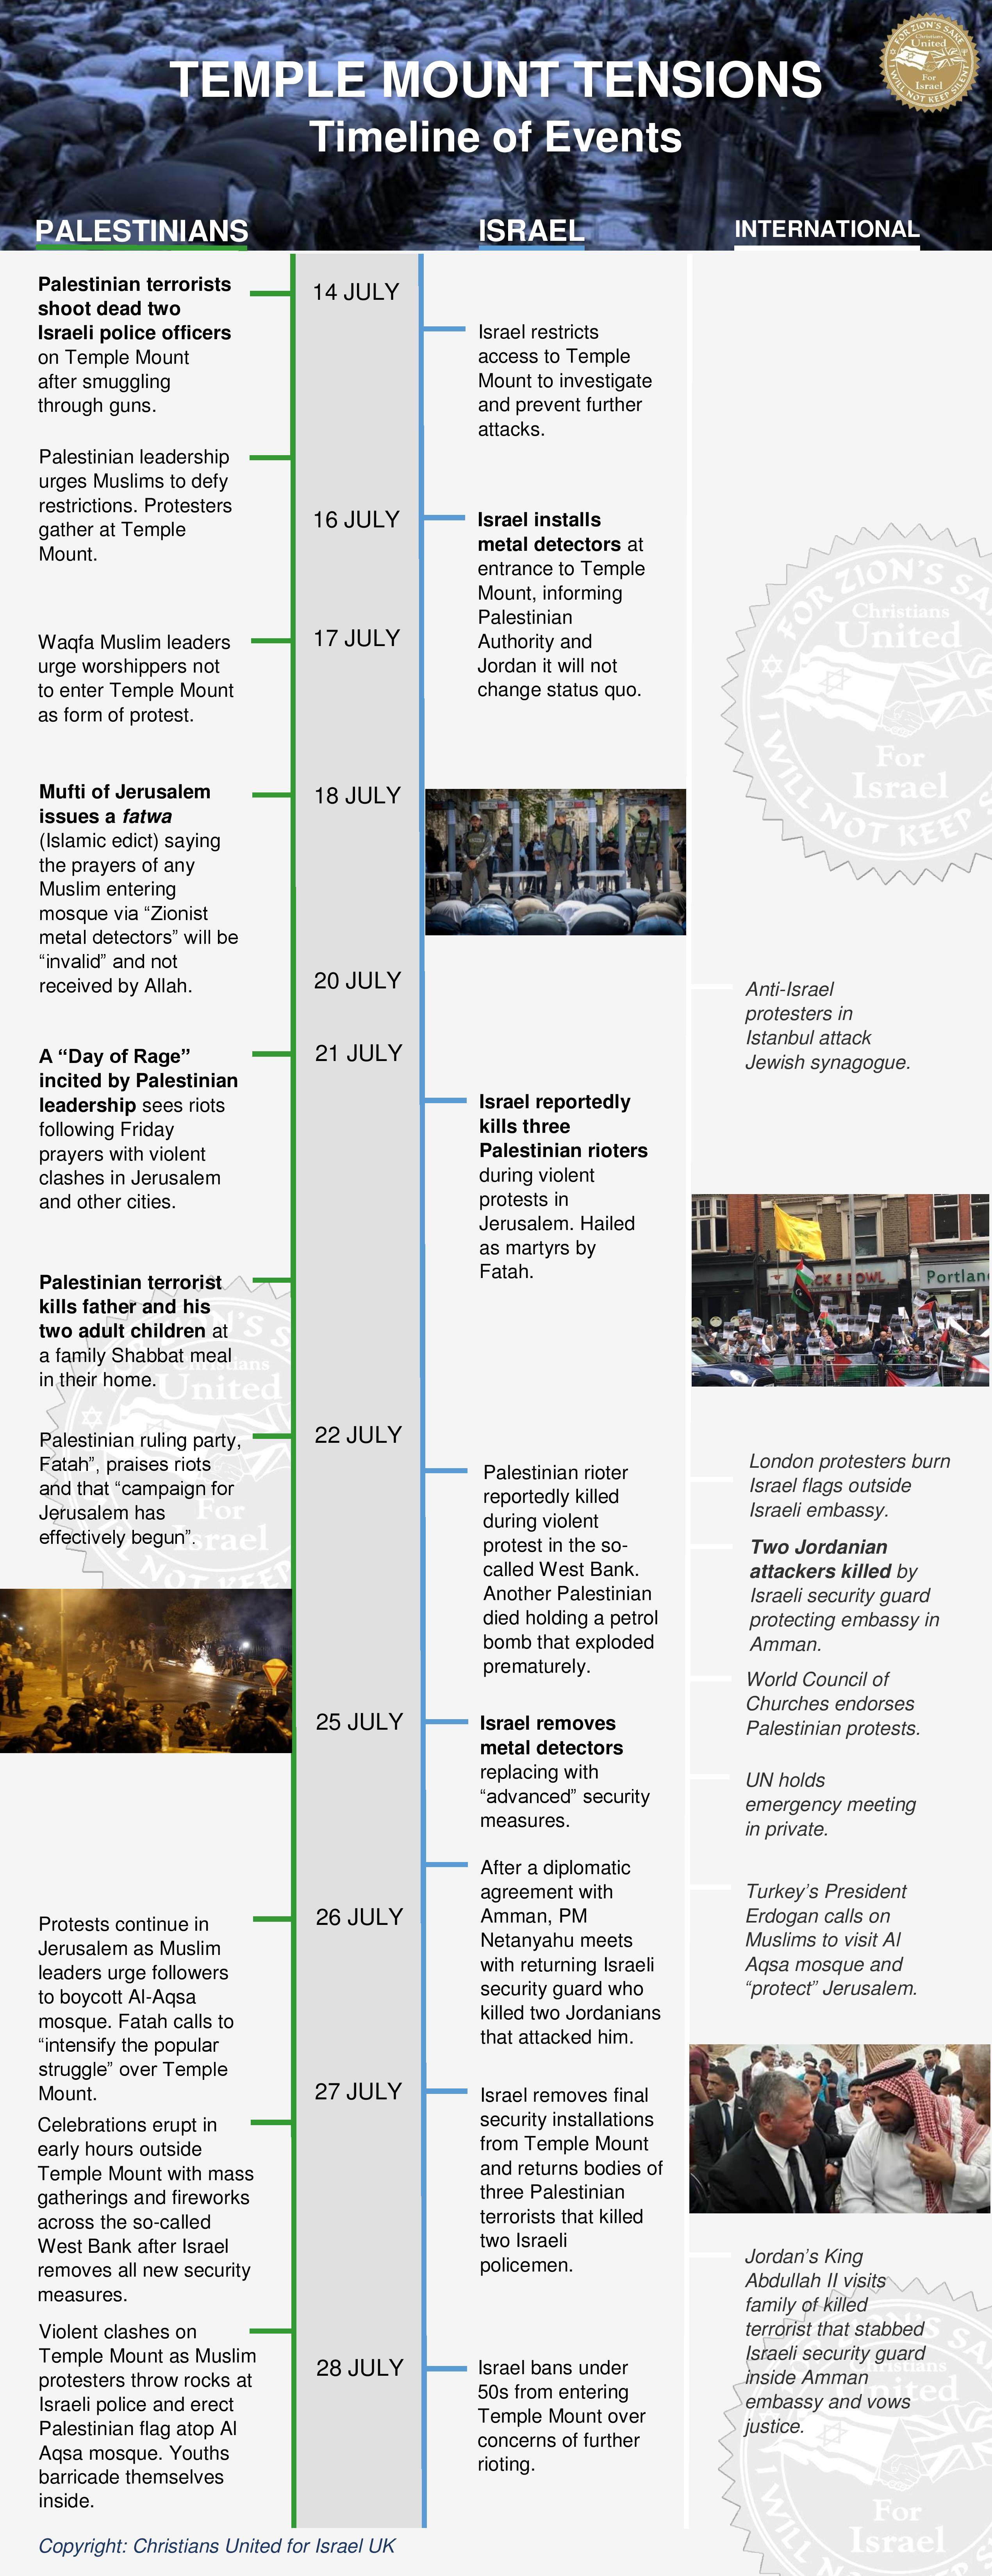 temple mount tensions timeline of the facts